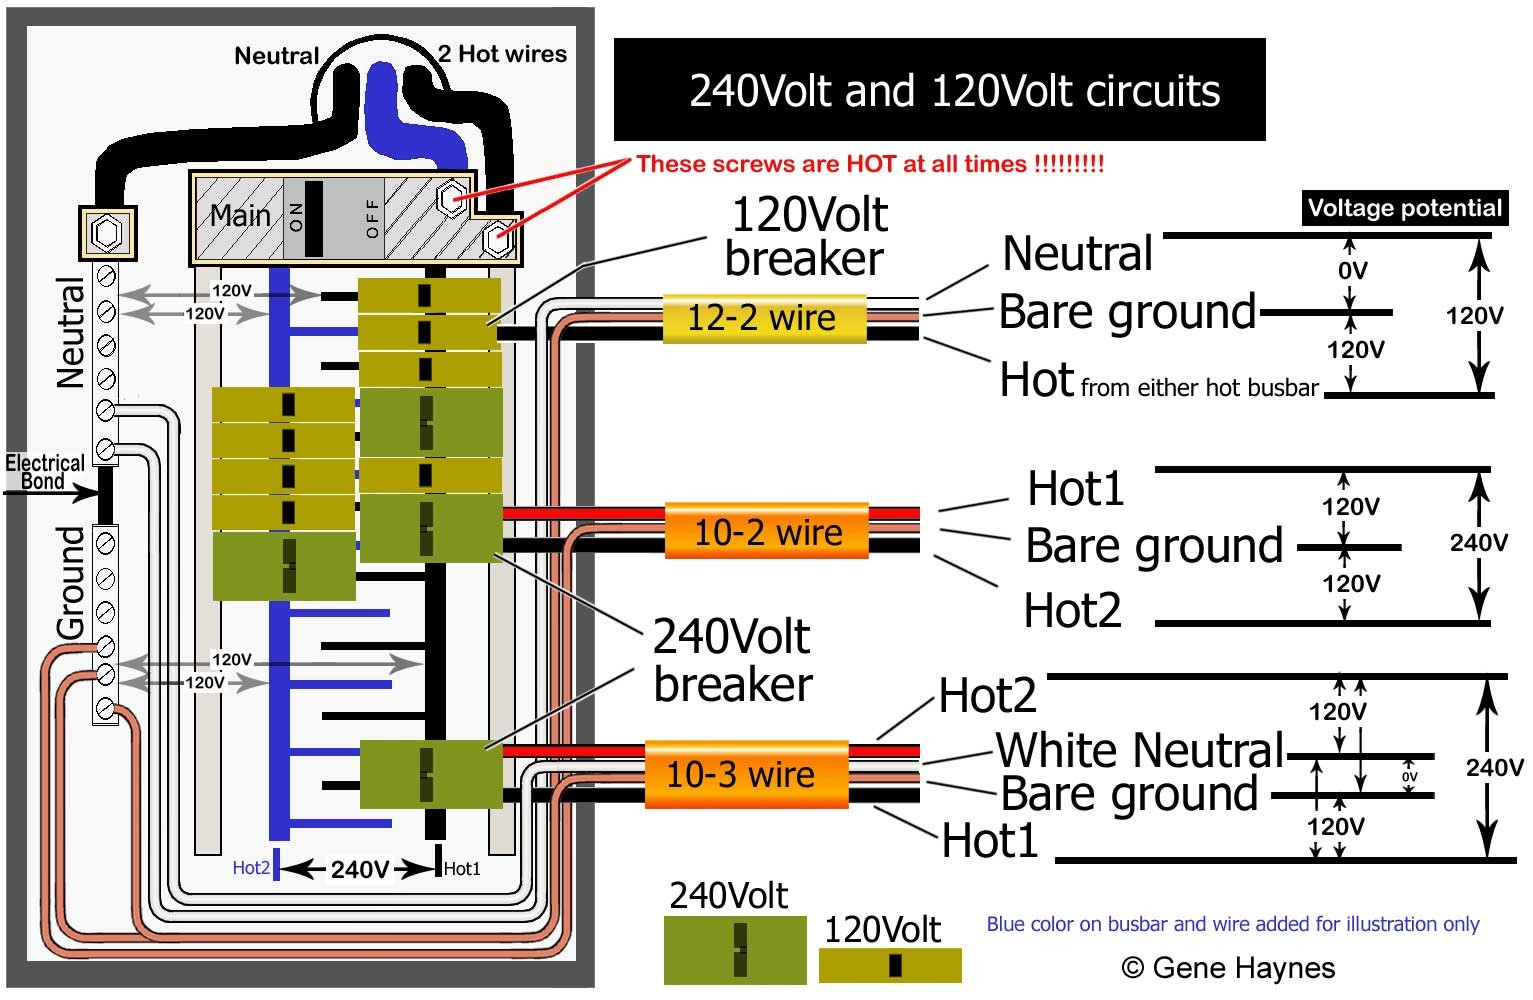 hight resolution of basic thermostat wiring diagram residential scion fuse box residential wiring schematics residential electrical service diagram